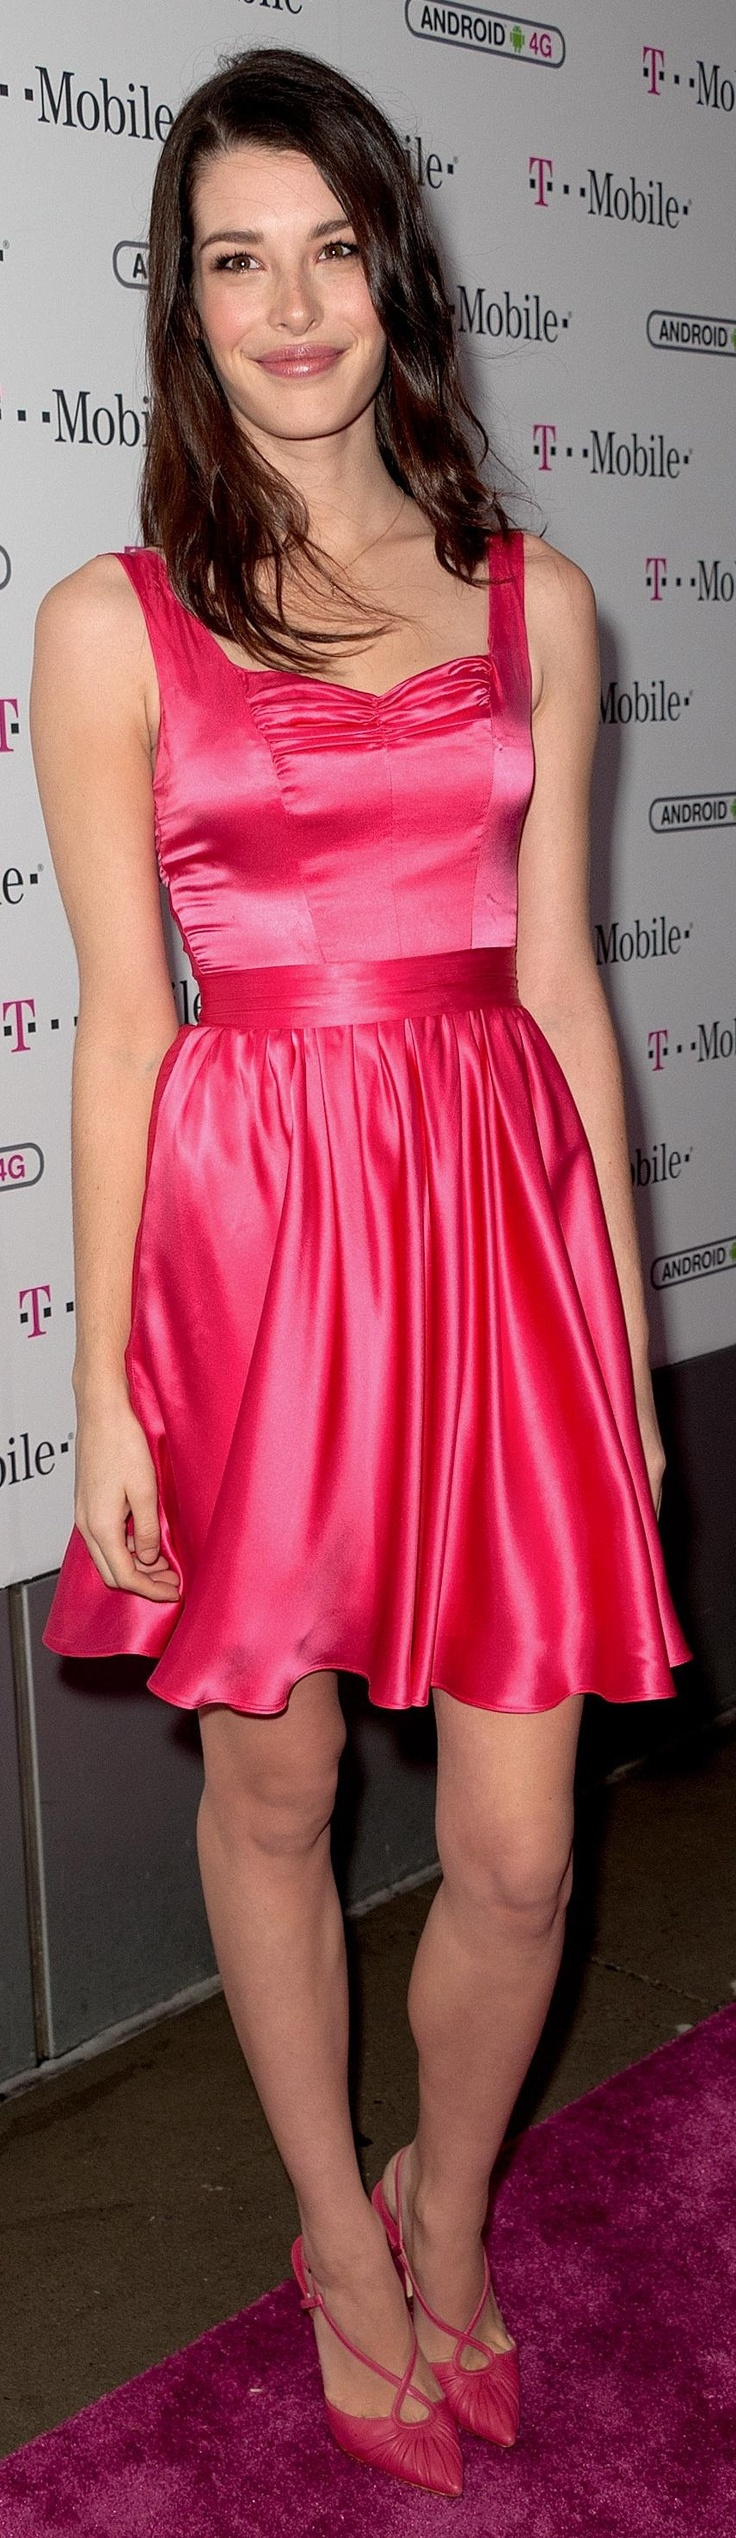 T-Mobile's Carly to dump pink dress in favor of leather and a Ducati motorcycle